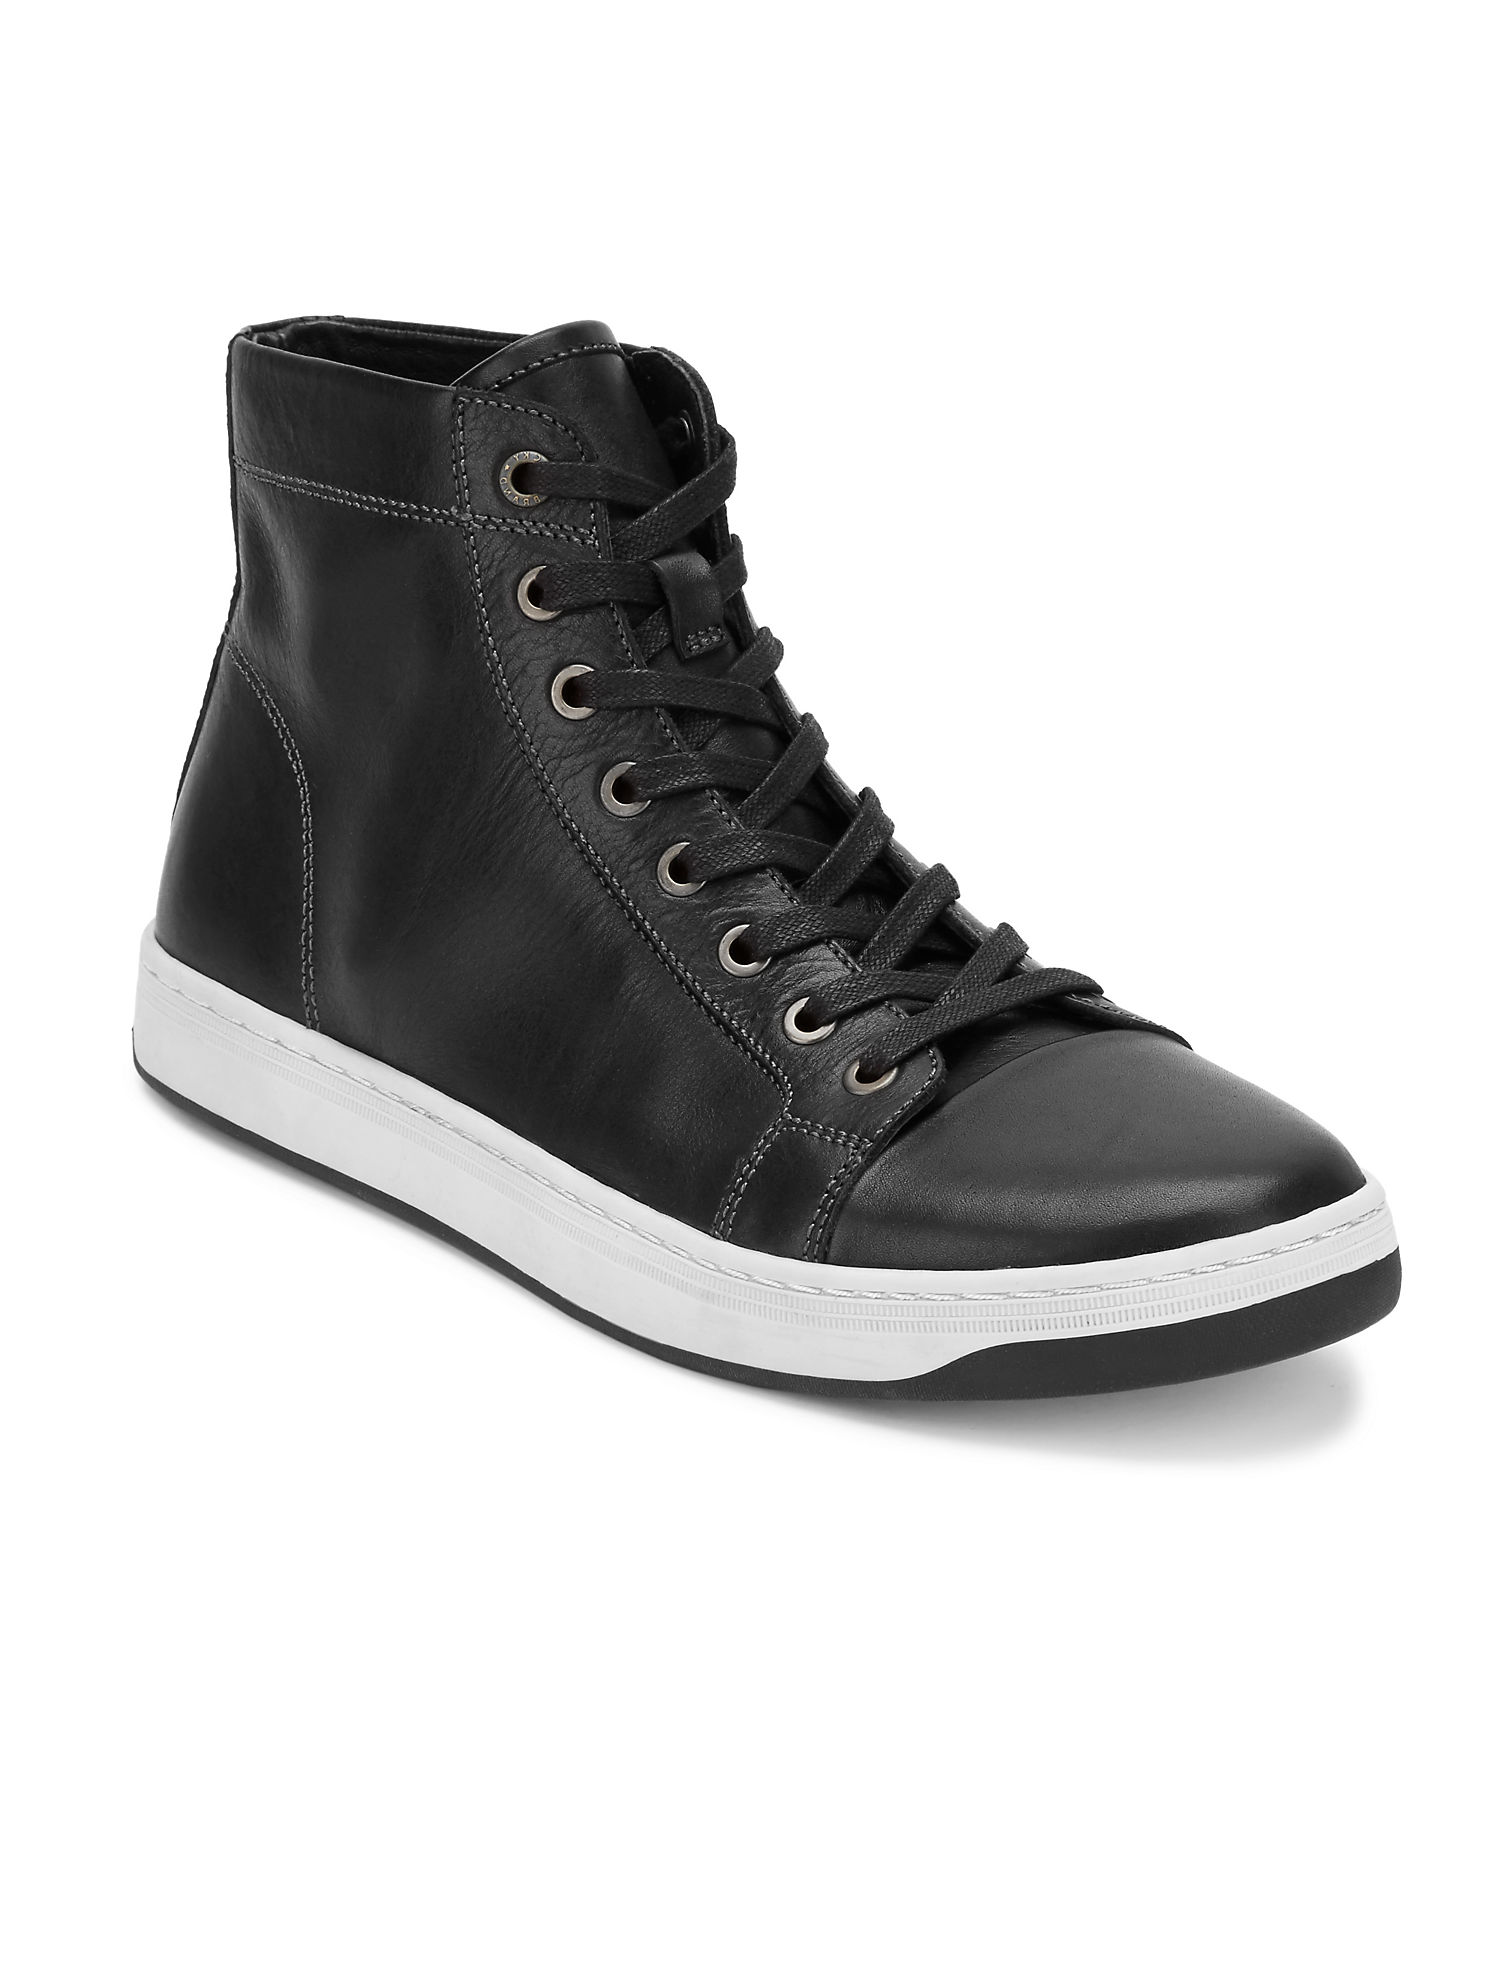 Nicekicks For Sale hi-top sneakers - Black BOTH Shoes Sale Largest Supplier Recommend QZrY5x